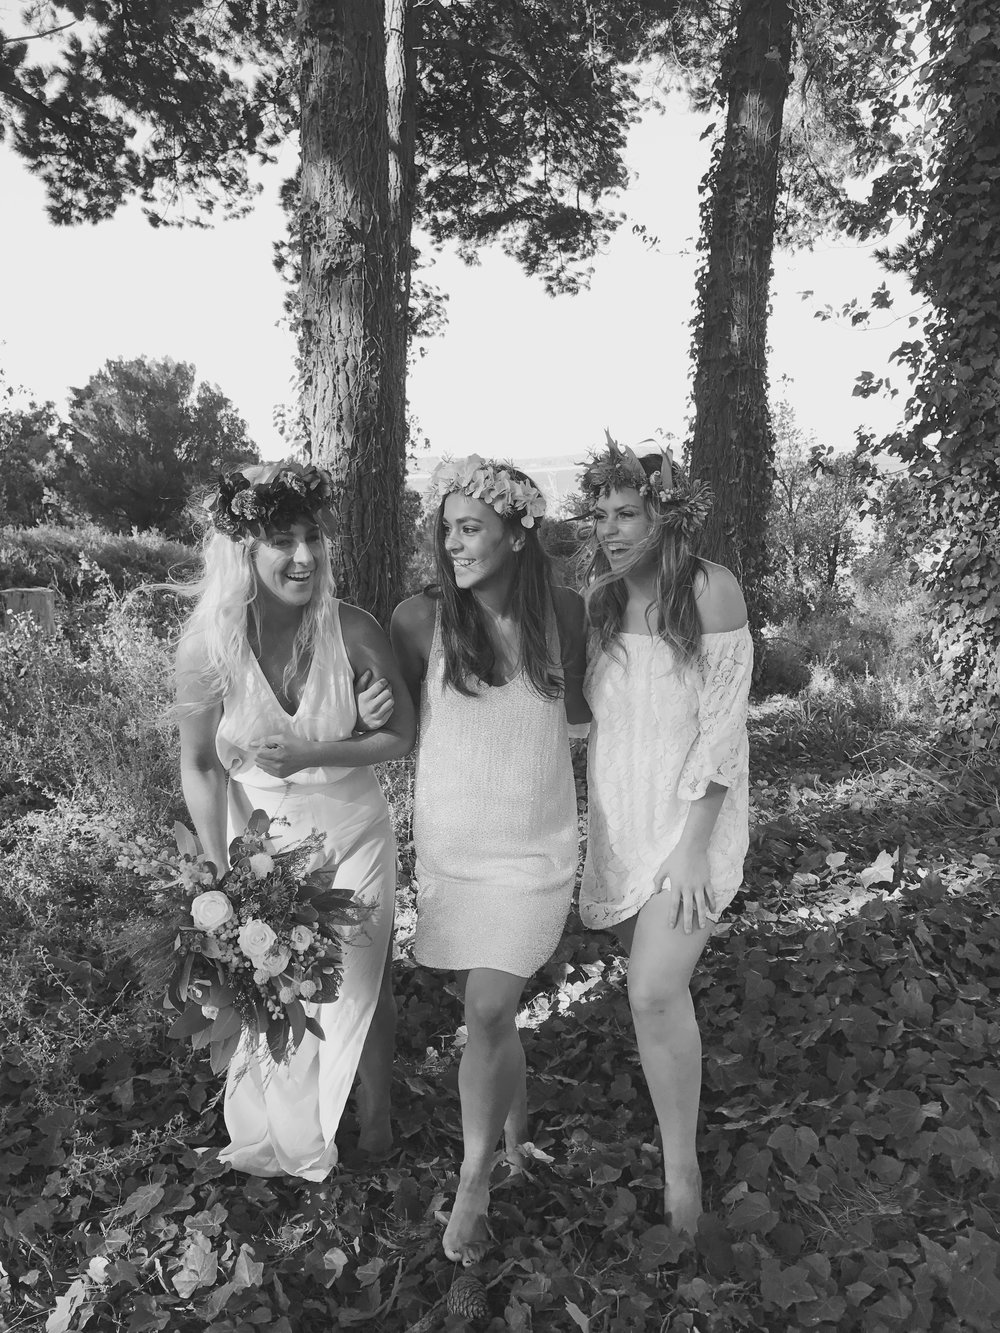 IN THE VINE FORREST HAVINg A LAUGH TOGETHER AS GAL PALS DO